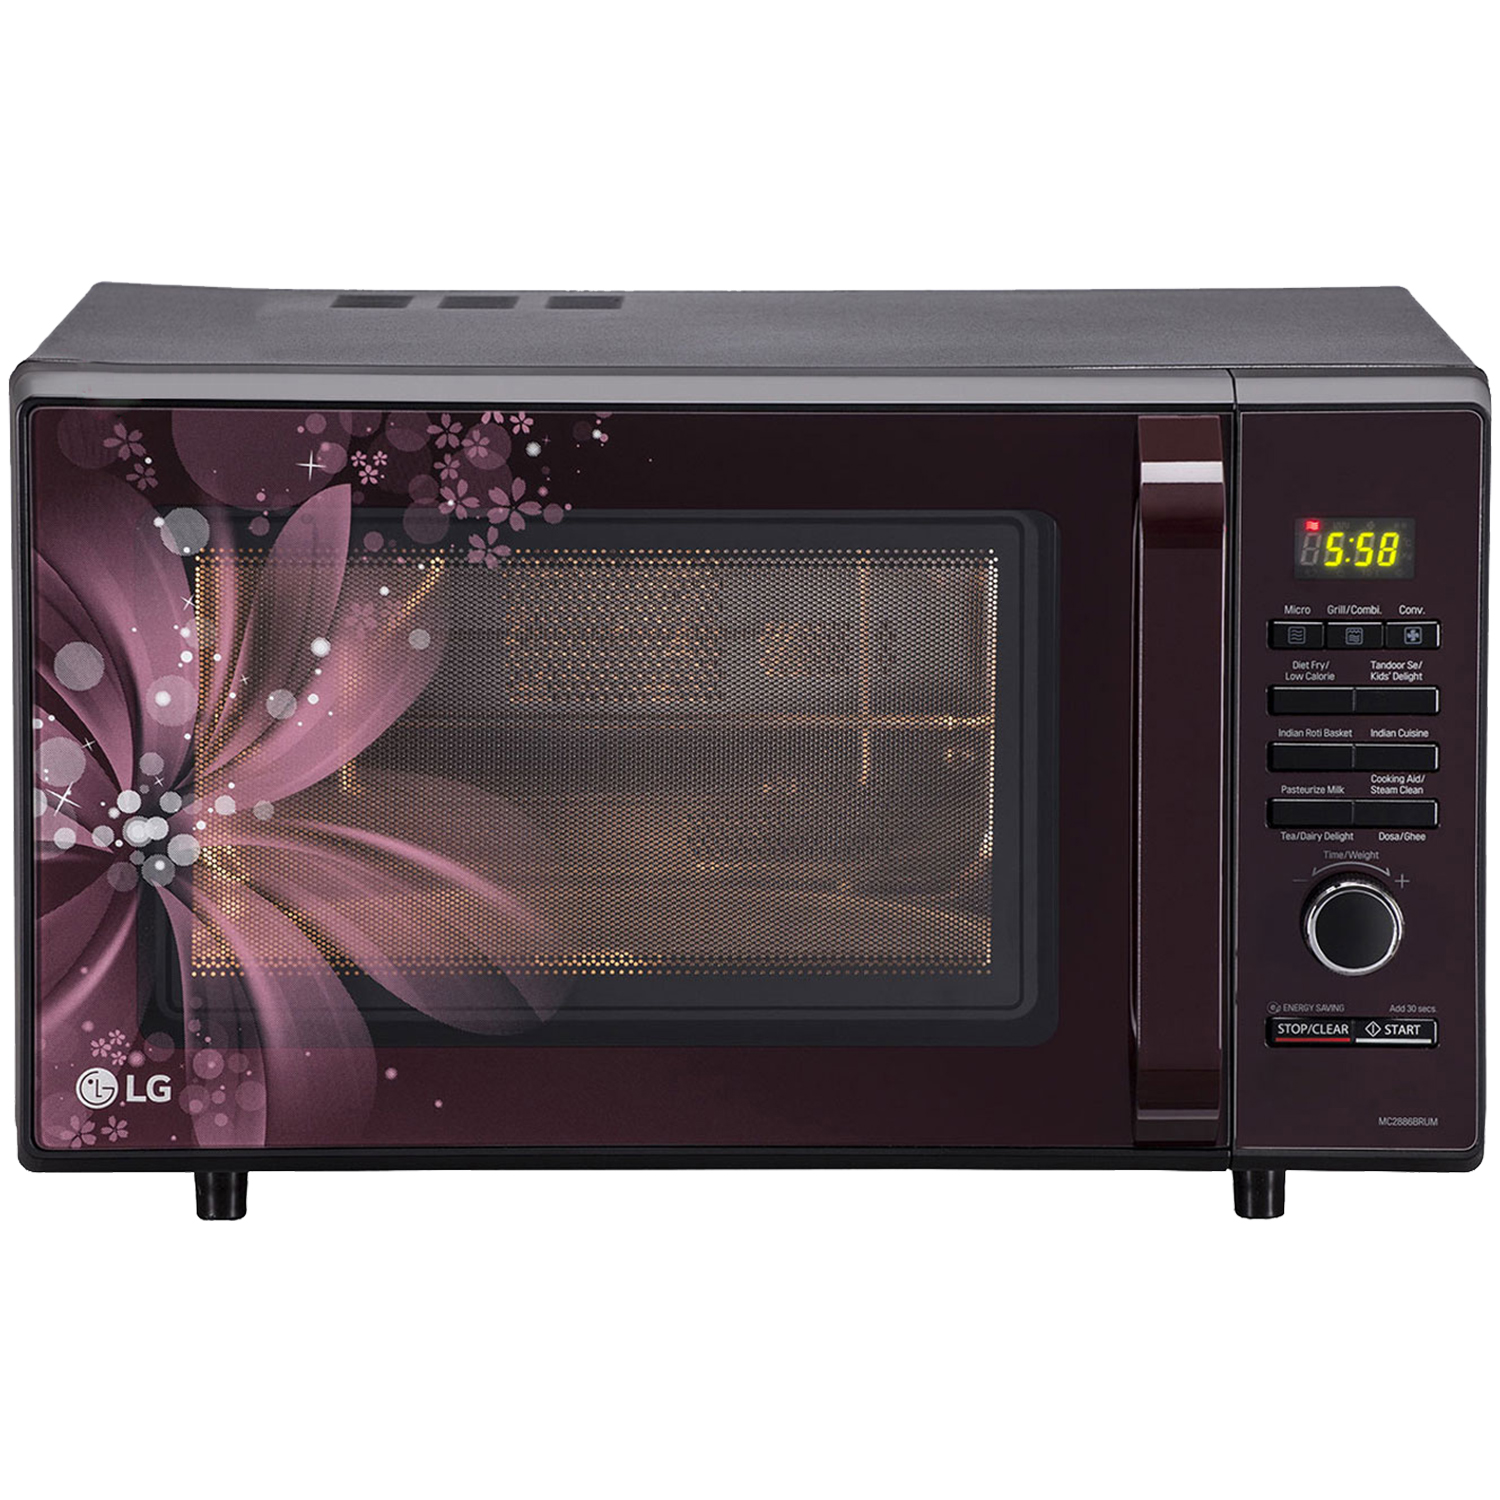 Home Home Appliances Microwave Ovens Convection Lg 28l